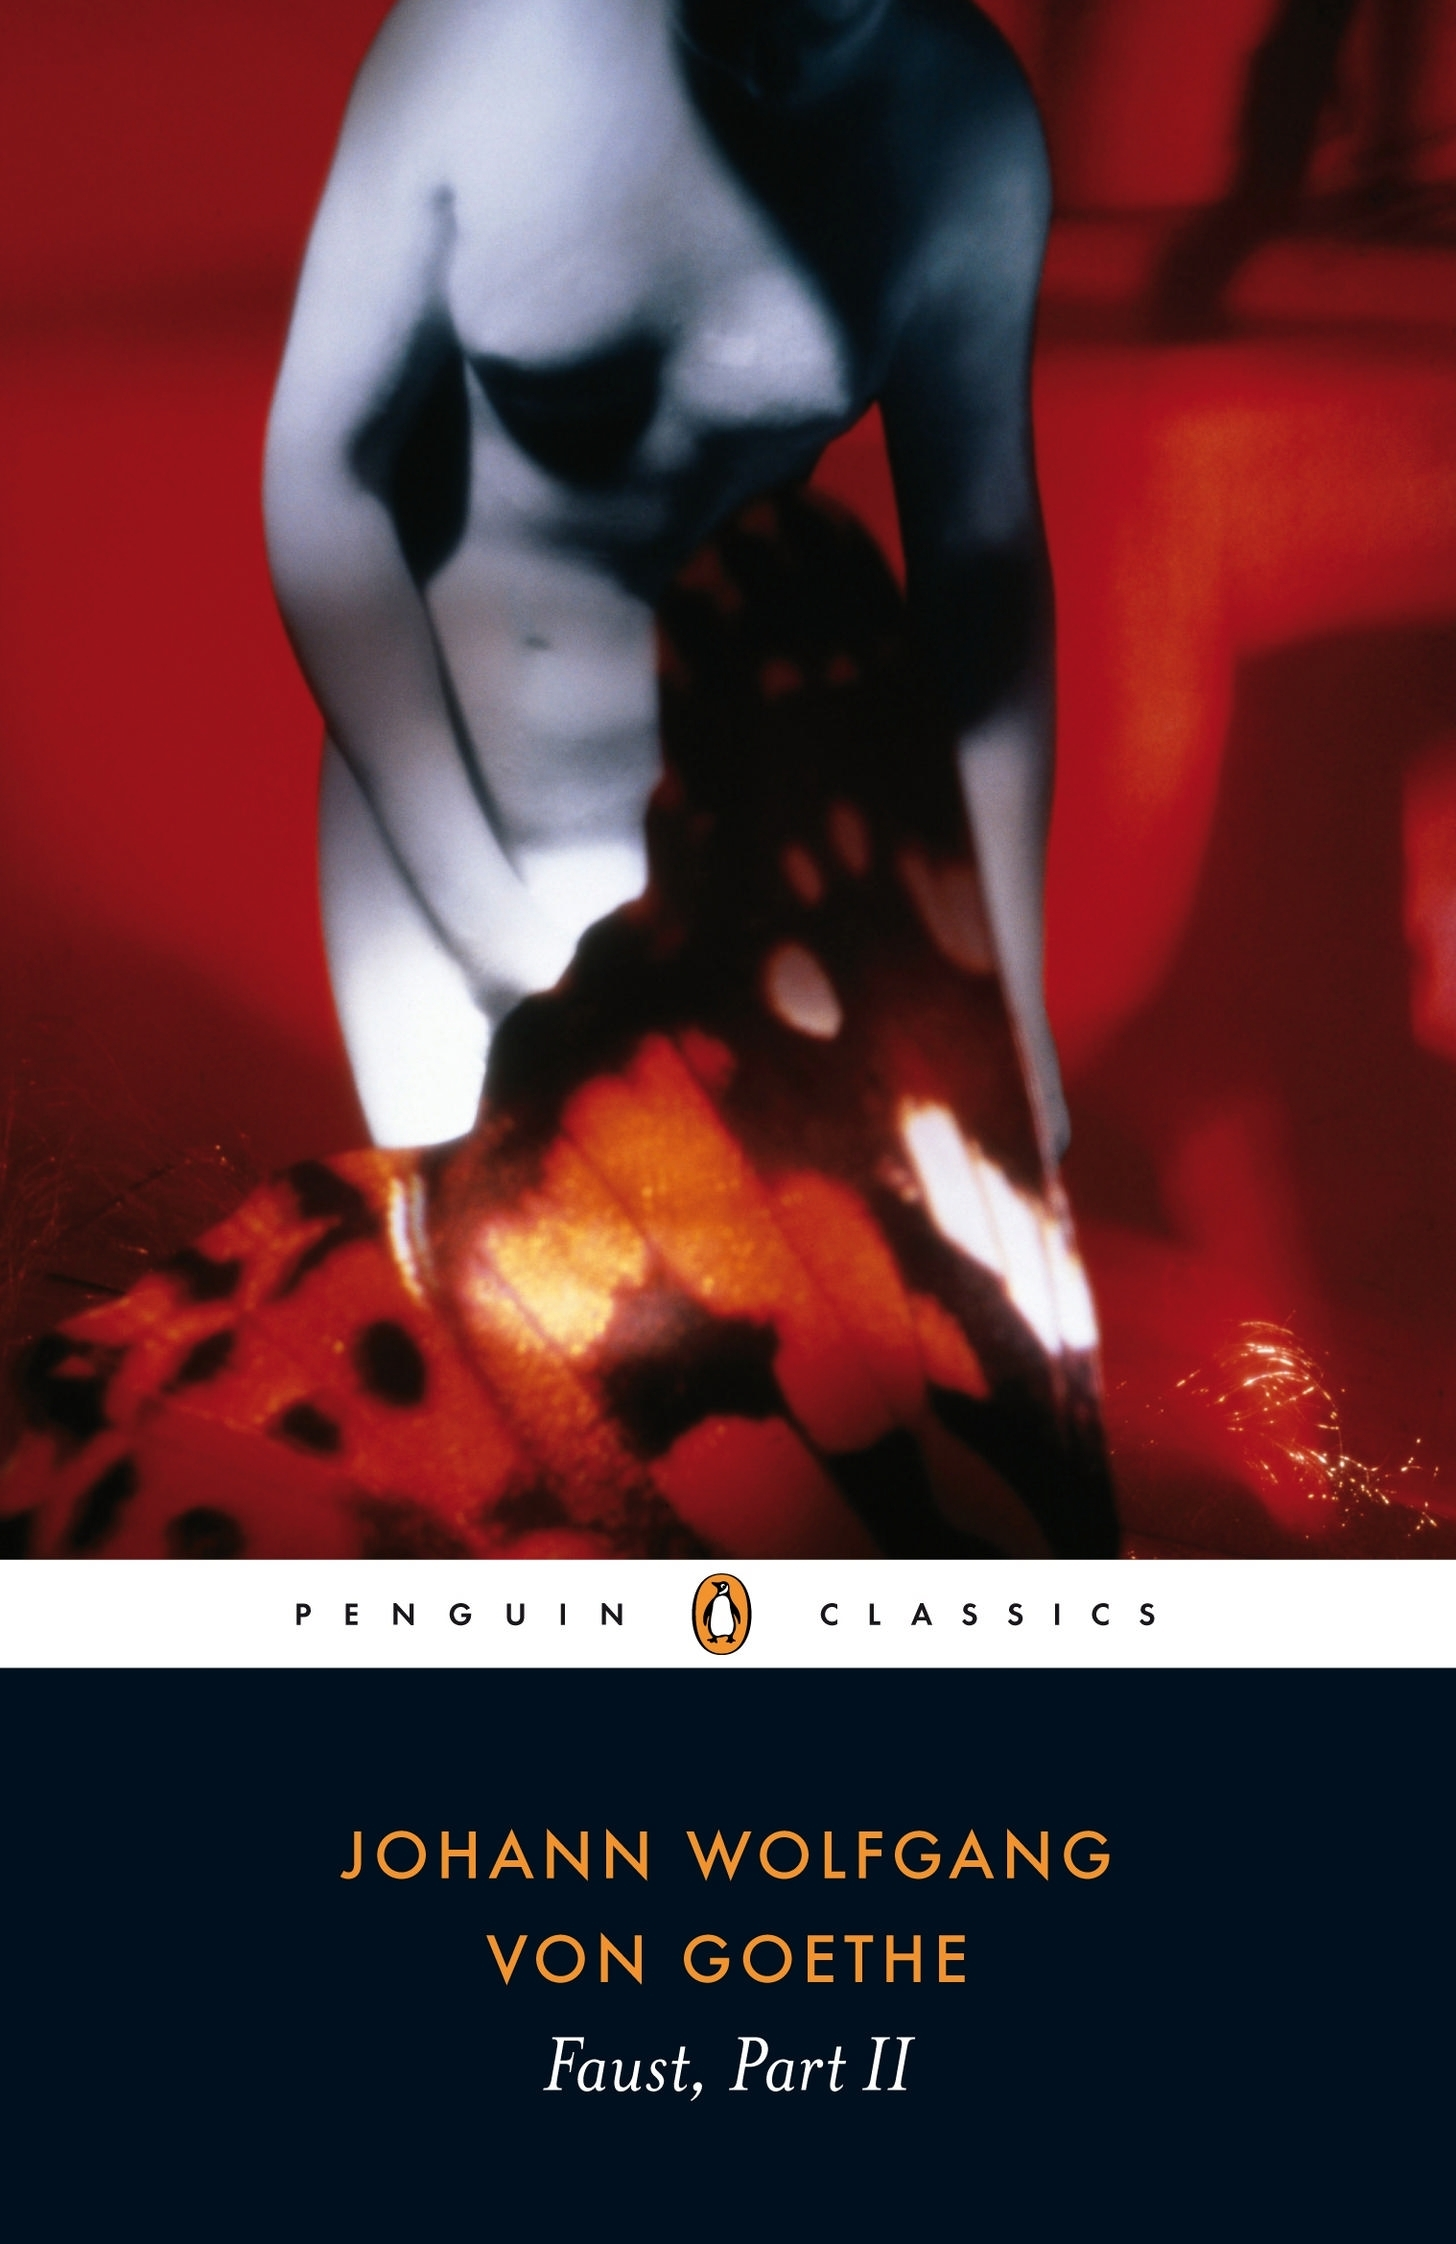 an analysis of the hero in faust by johann wolfgang von goethe Read faust, faust, and faustus by johann wolfgang von goethe with rakuten kobo this volume contains complete works by johann wolfgang von goethe hero and.